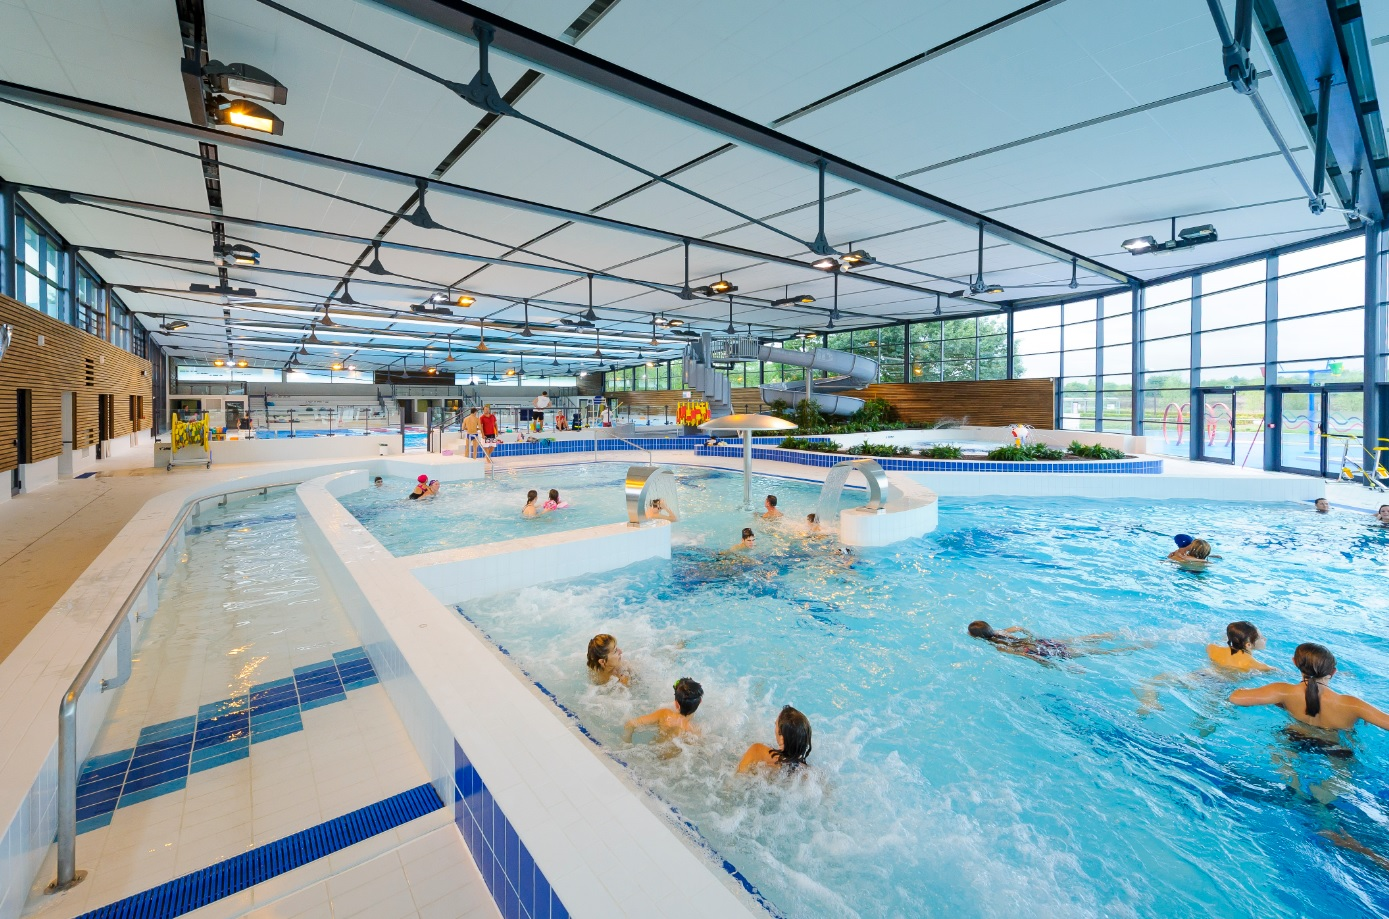 Centre aquatique intercommunal la vague paris saclay for Piscine du lac a tours